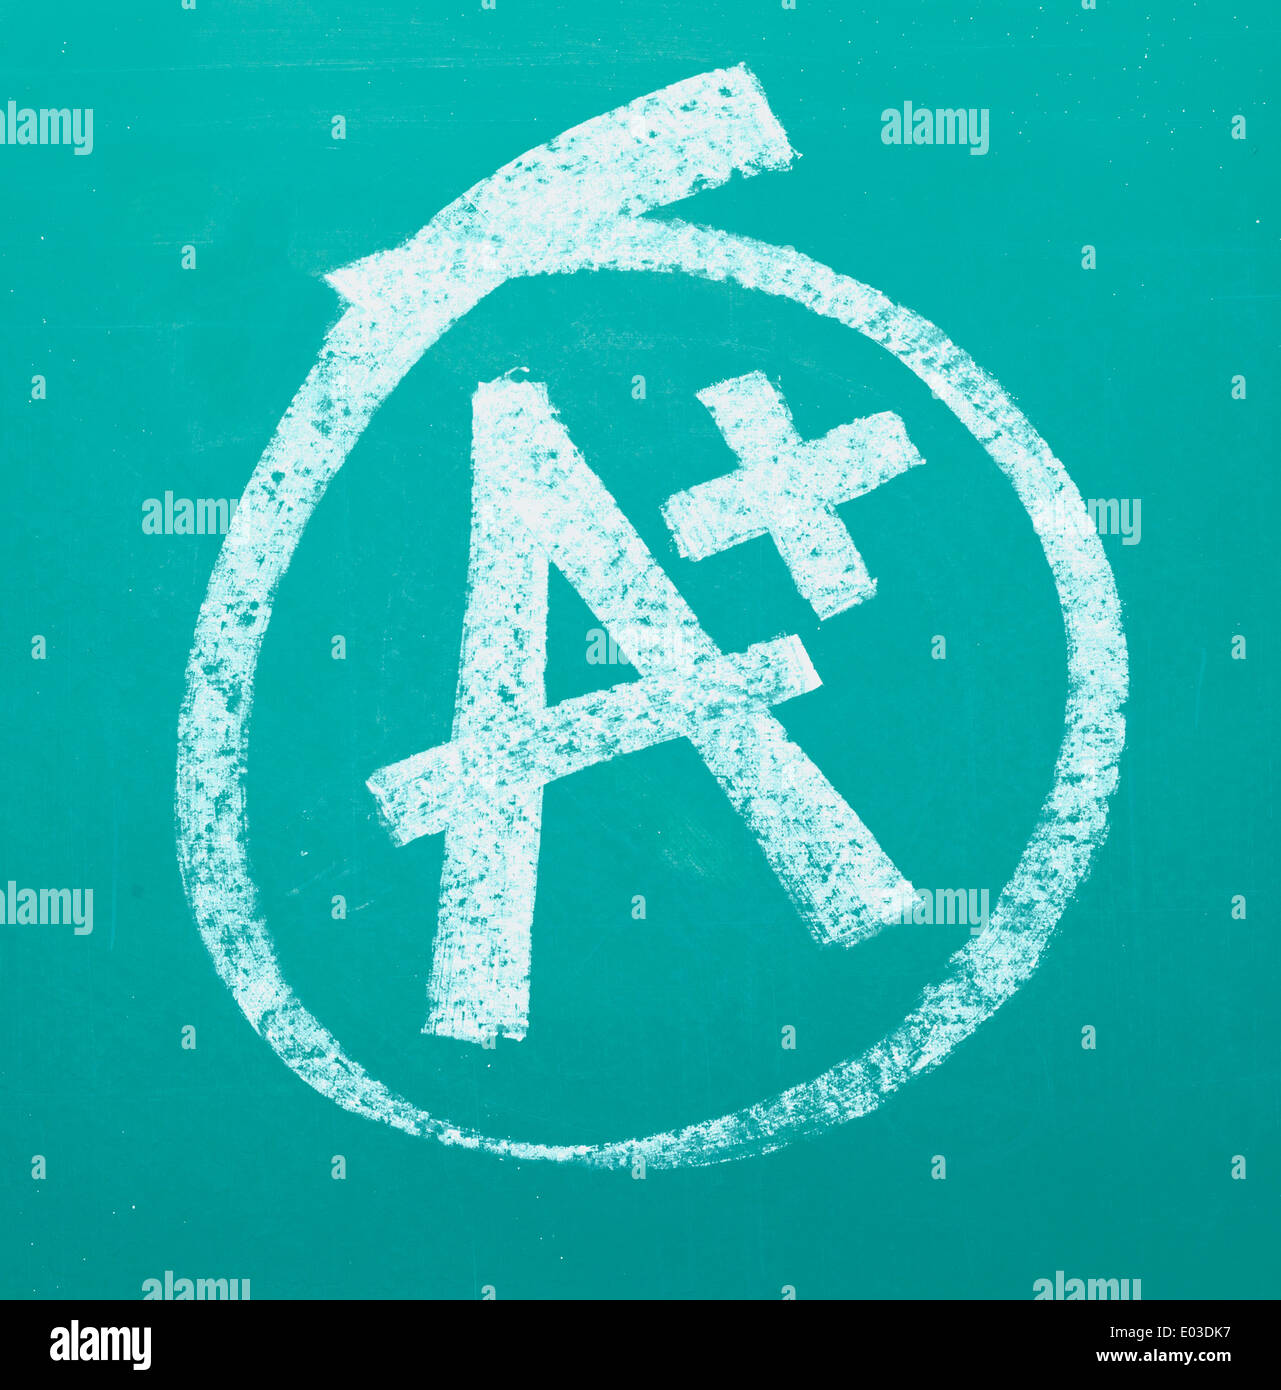 A grade drawn and circled on a chalk board. - Stock Image